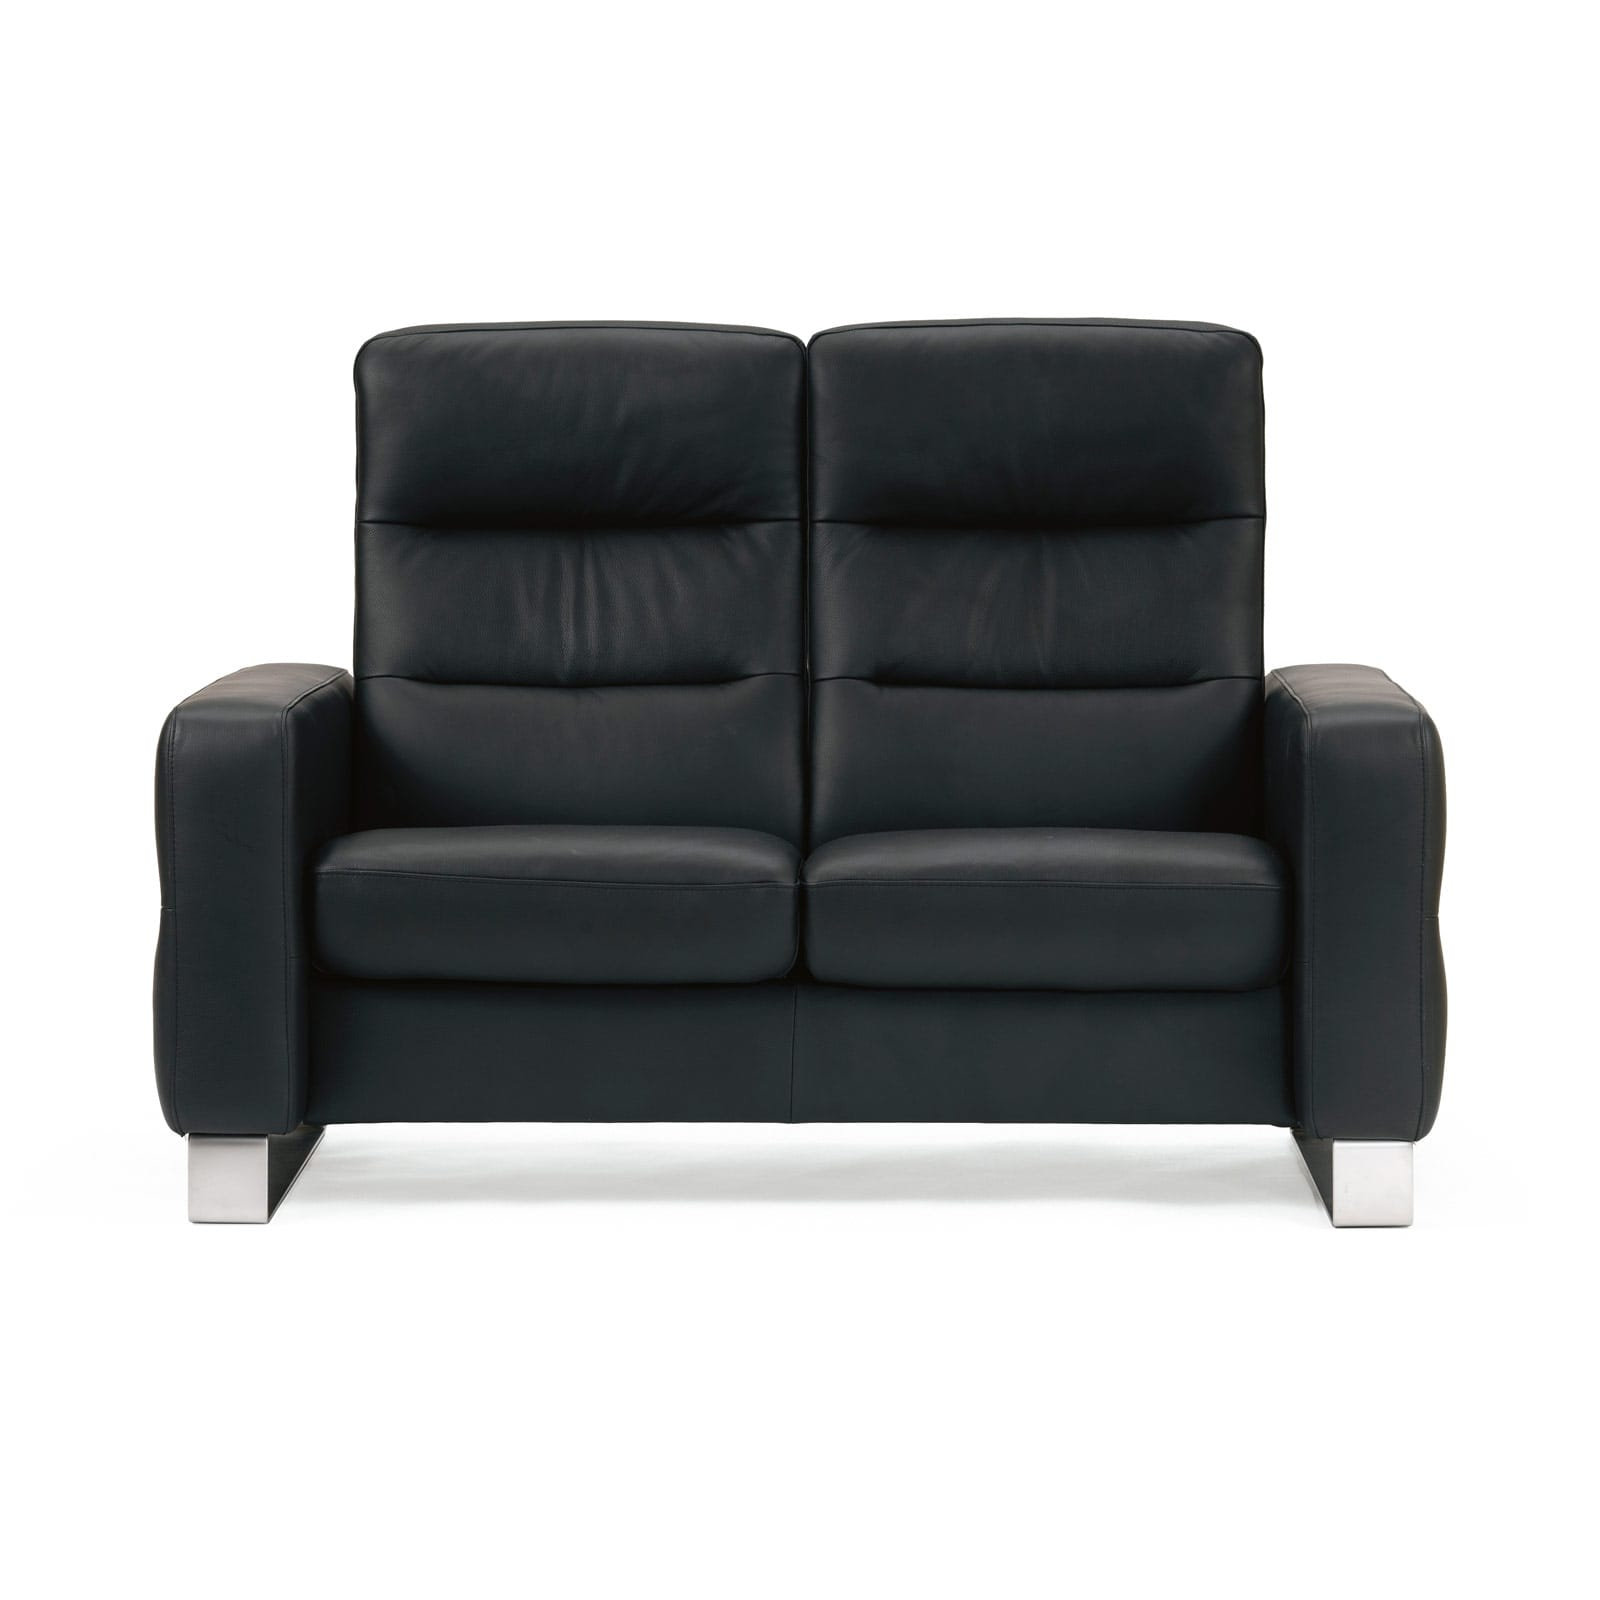 Full Size of Stressless Sofa Furniture Nz Couch Used Buckingham Arion Review Australia Manhattan Leather Ebay For Sale Cost 2 Sitzer Wave M Hoch Paloma Black Le Corbusier Sofa Stressless Sofa